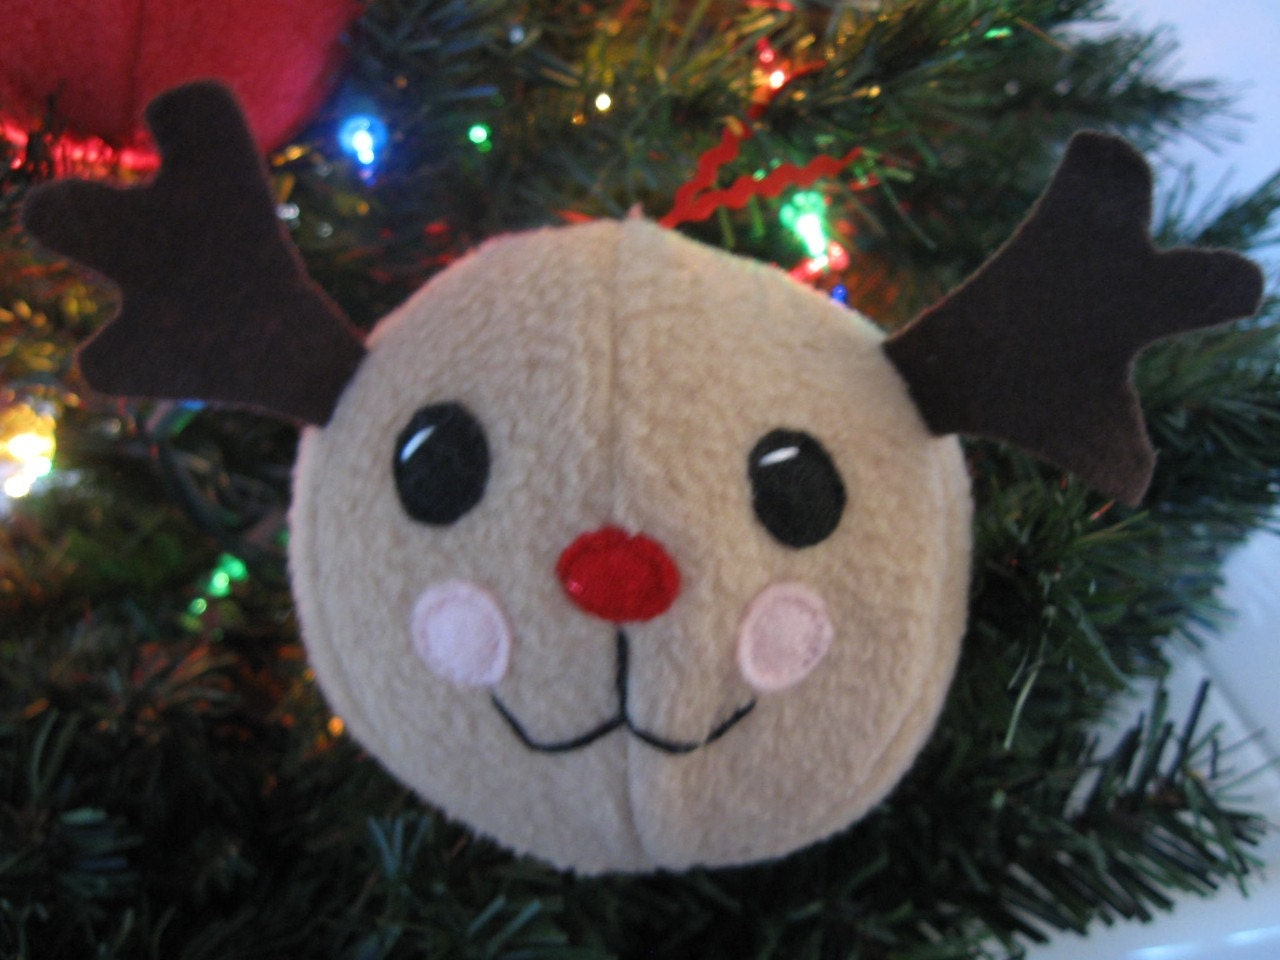 Holiday Ornament Sewing Pattern - Snowman Reindeer and Holly Berry - DIY tutorial